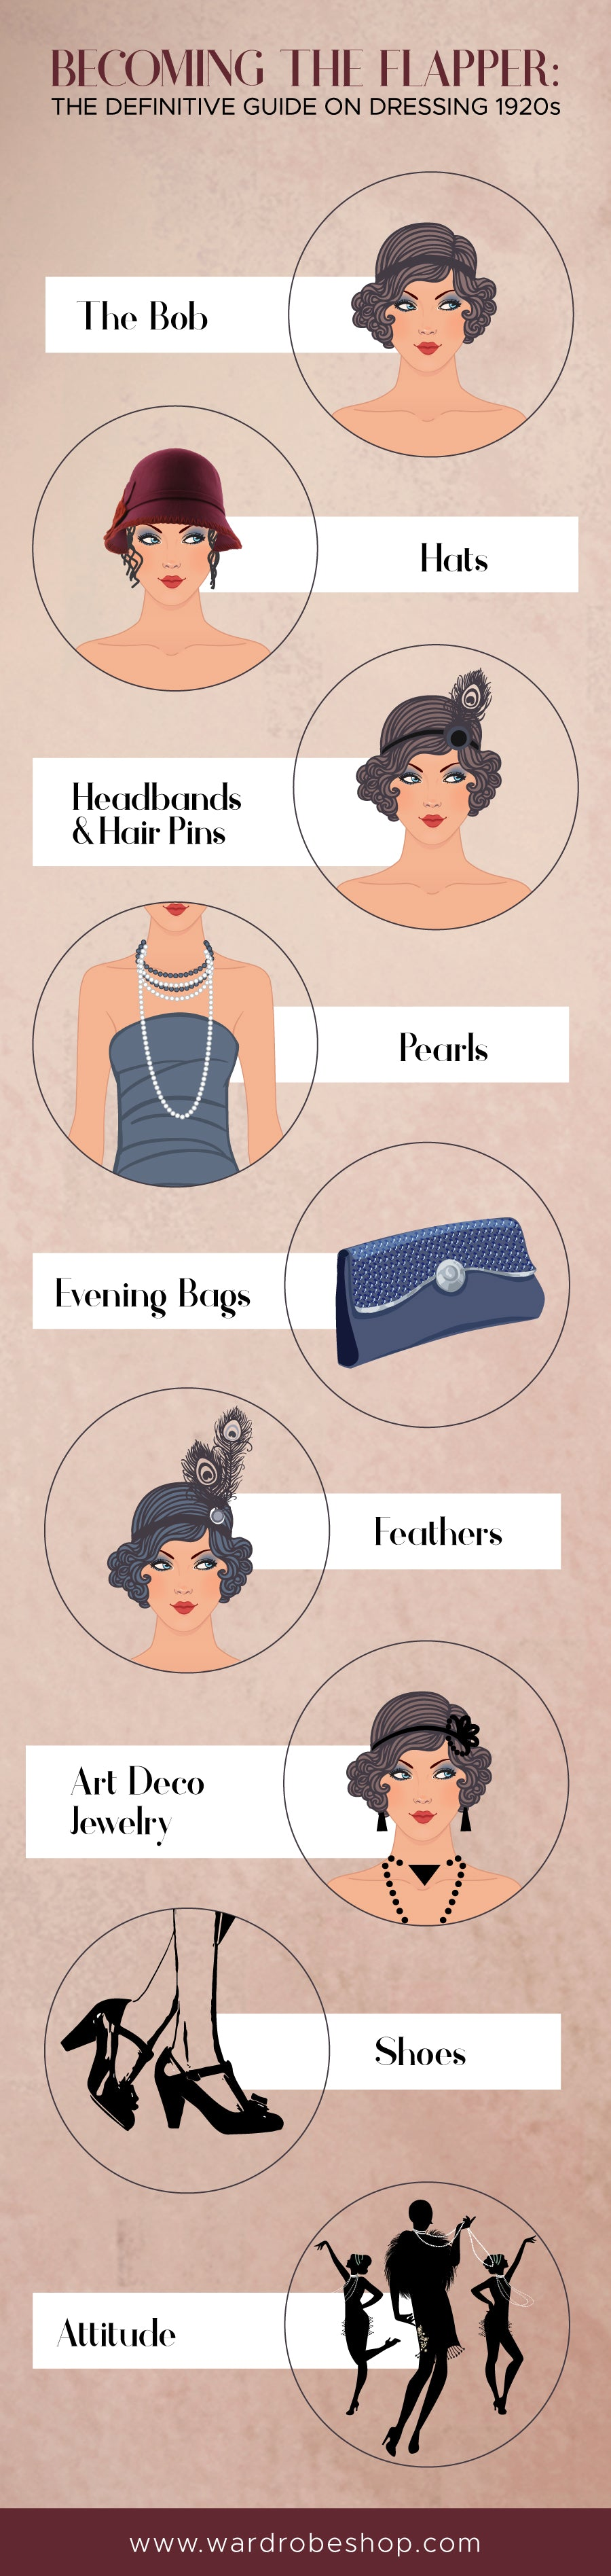 how to style a vintage inspired dress infographic